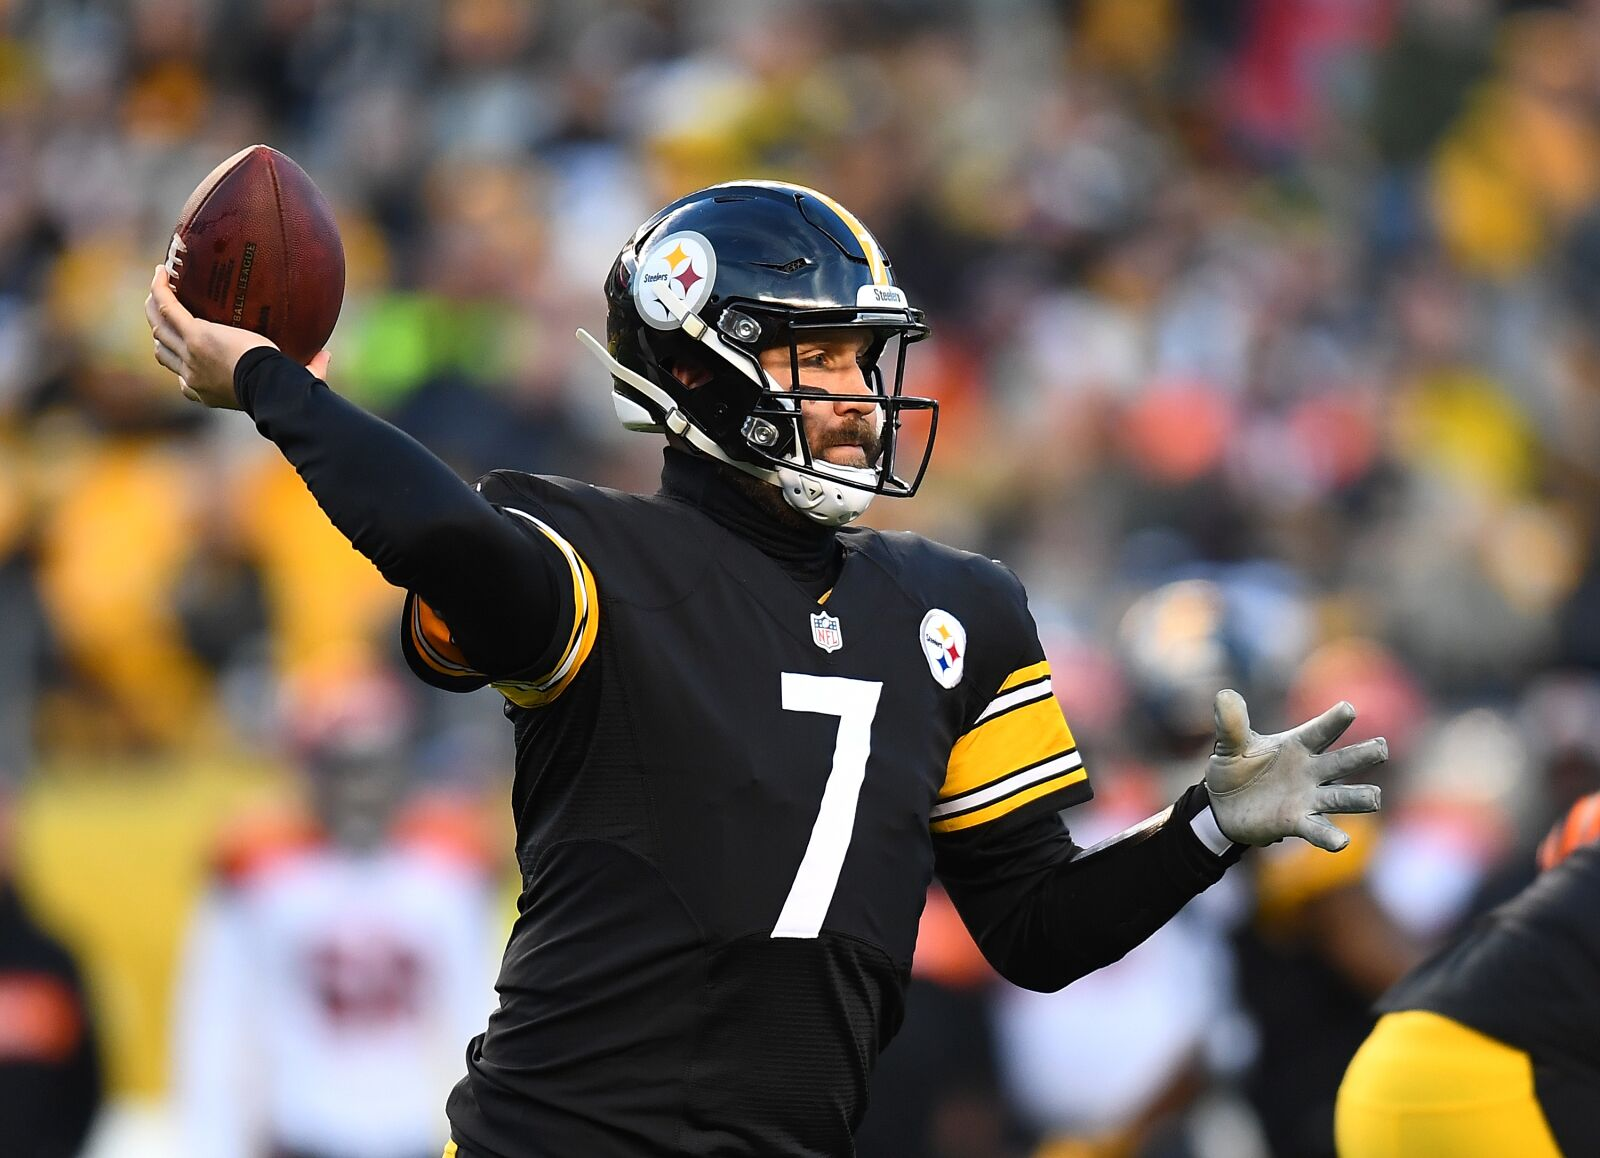 e7a1a3501cc Steelers working on extension for Ben Roethlisberger, but is that wise?